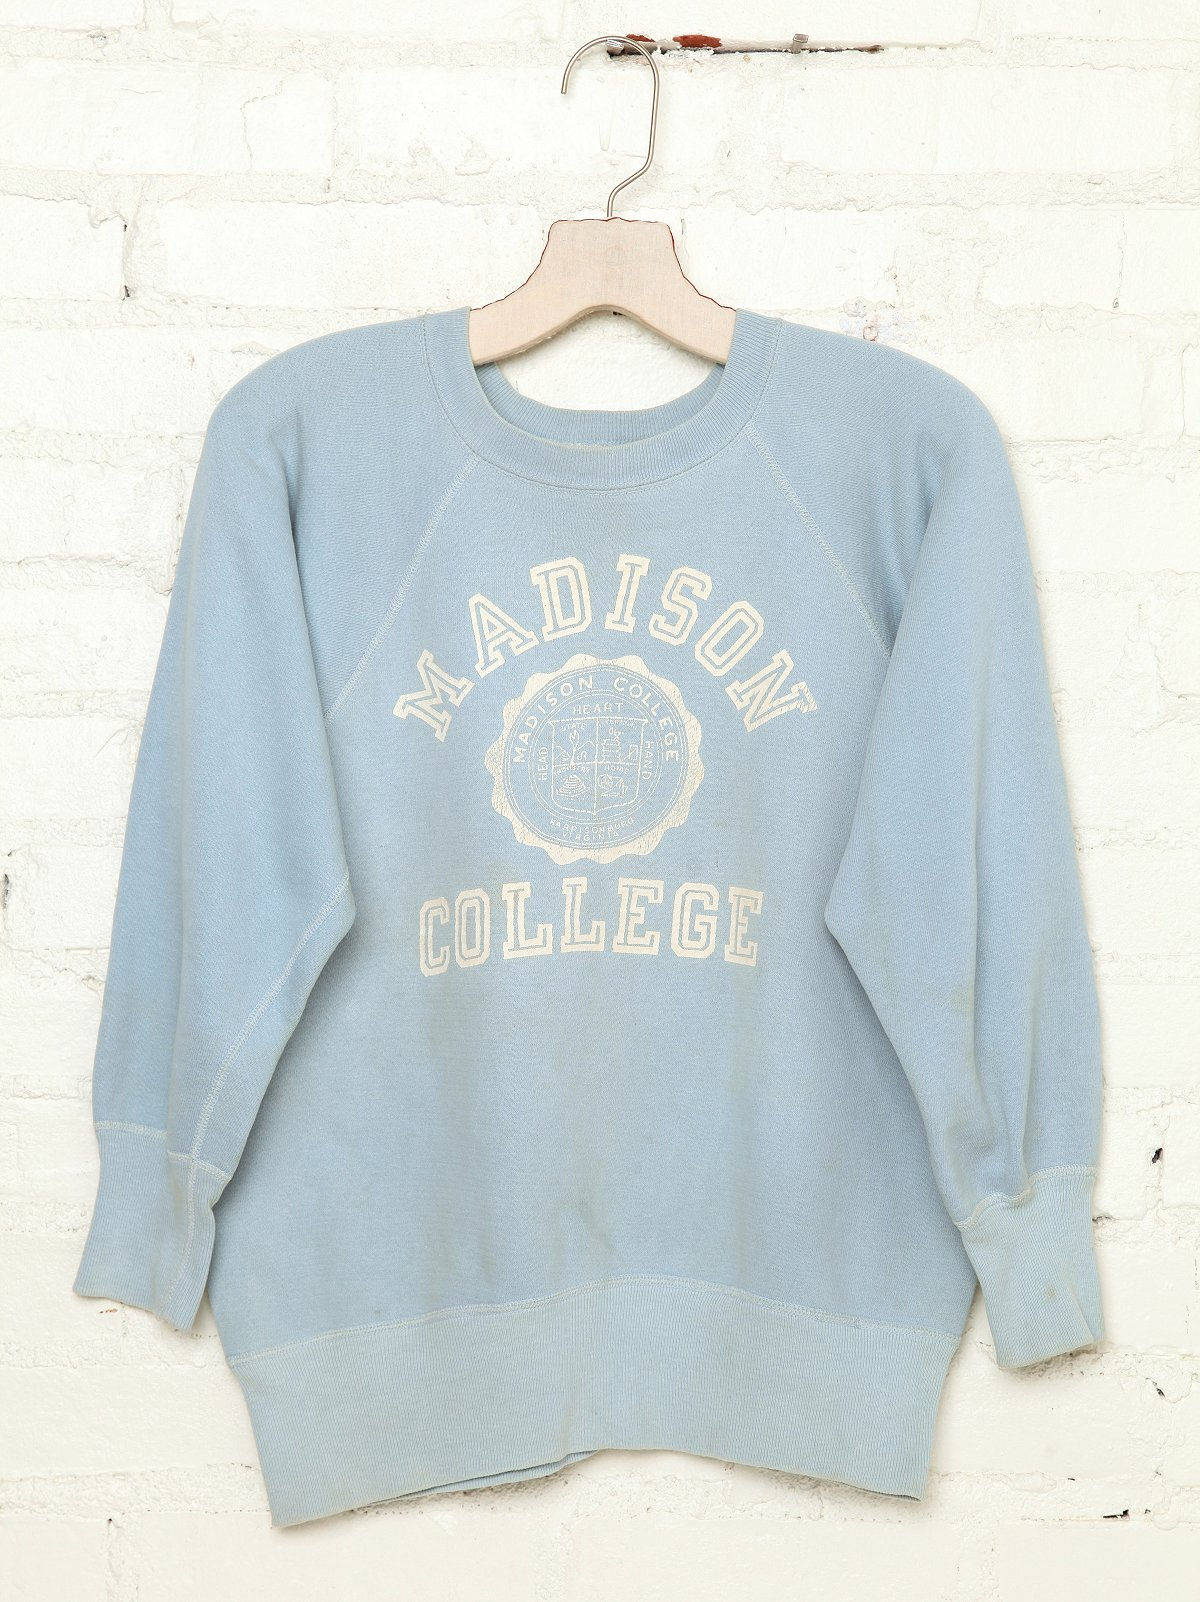 Vintage Madison College Sweatshirt